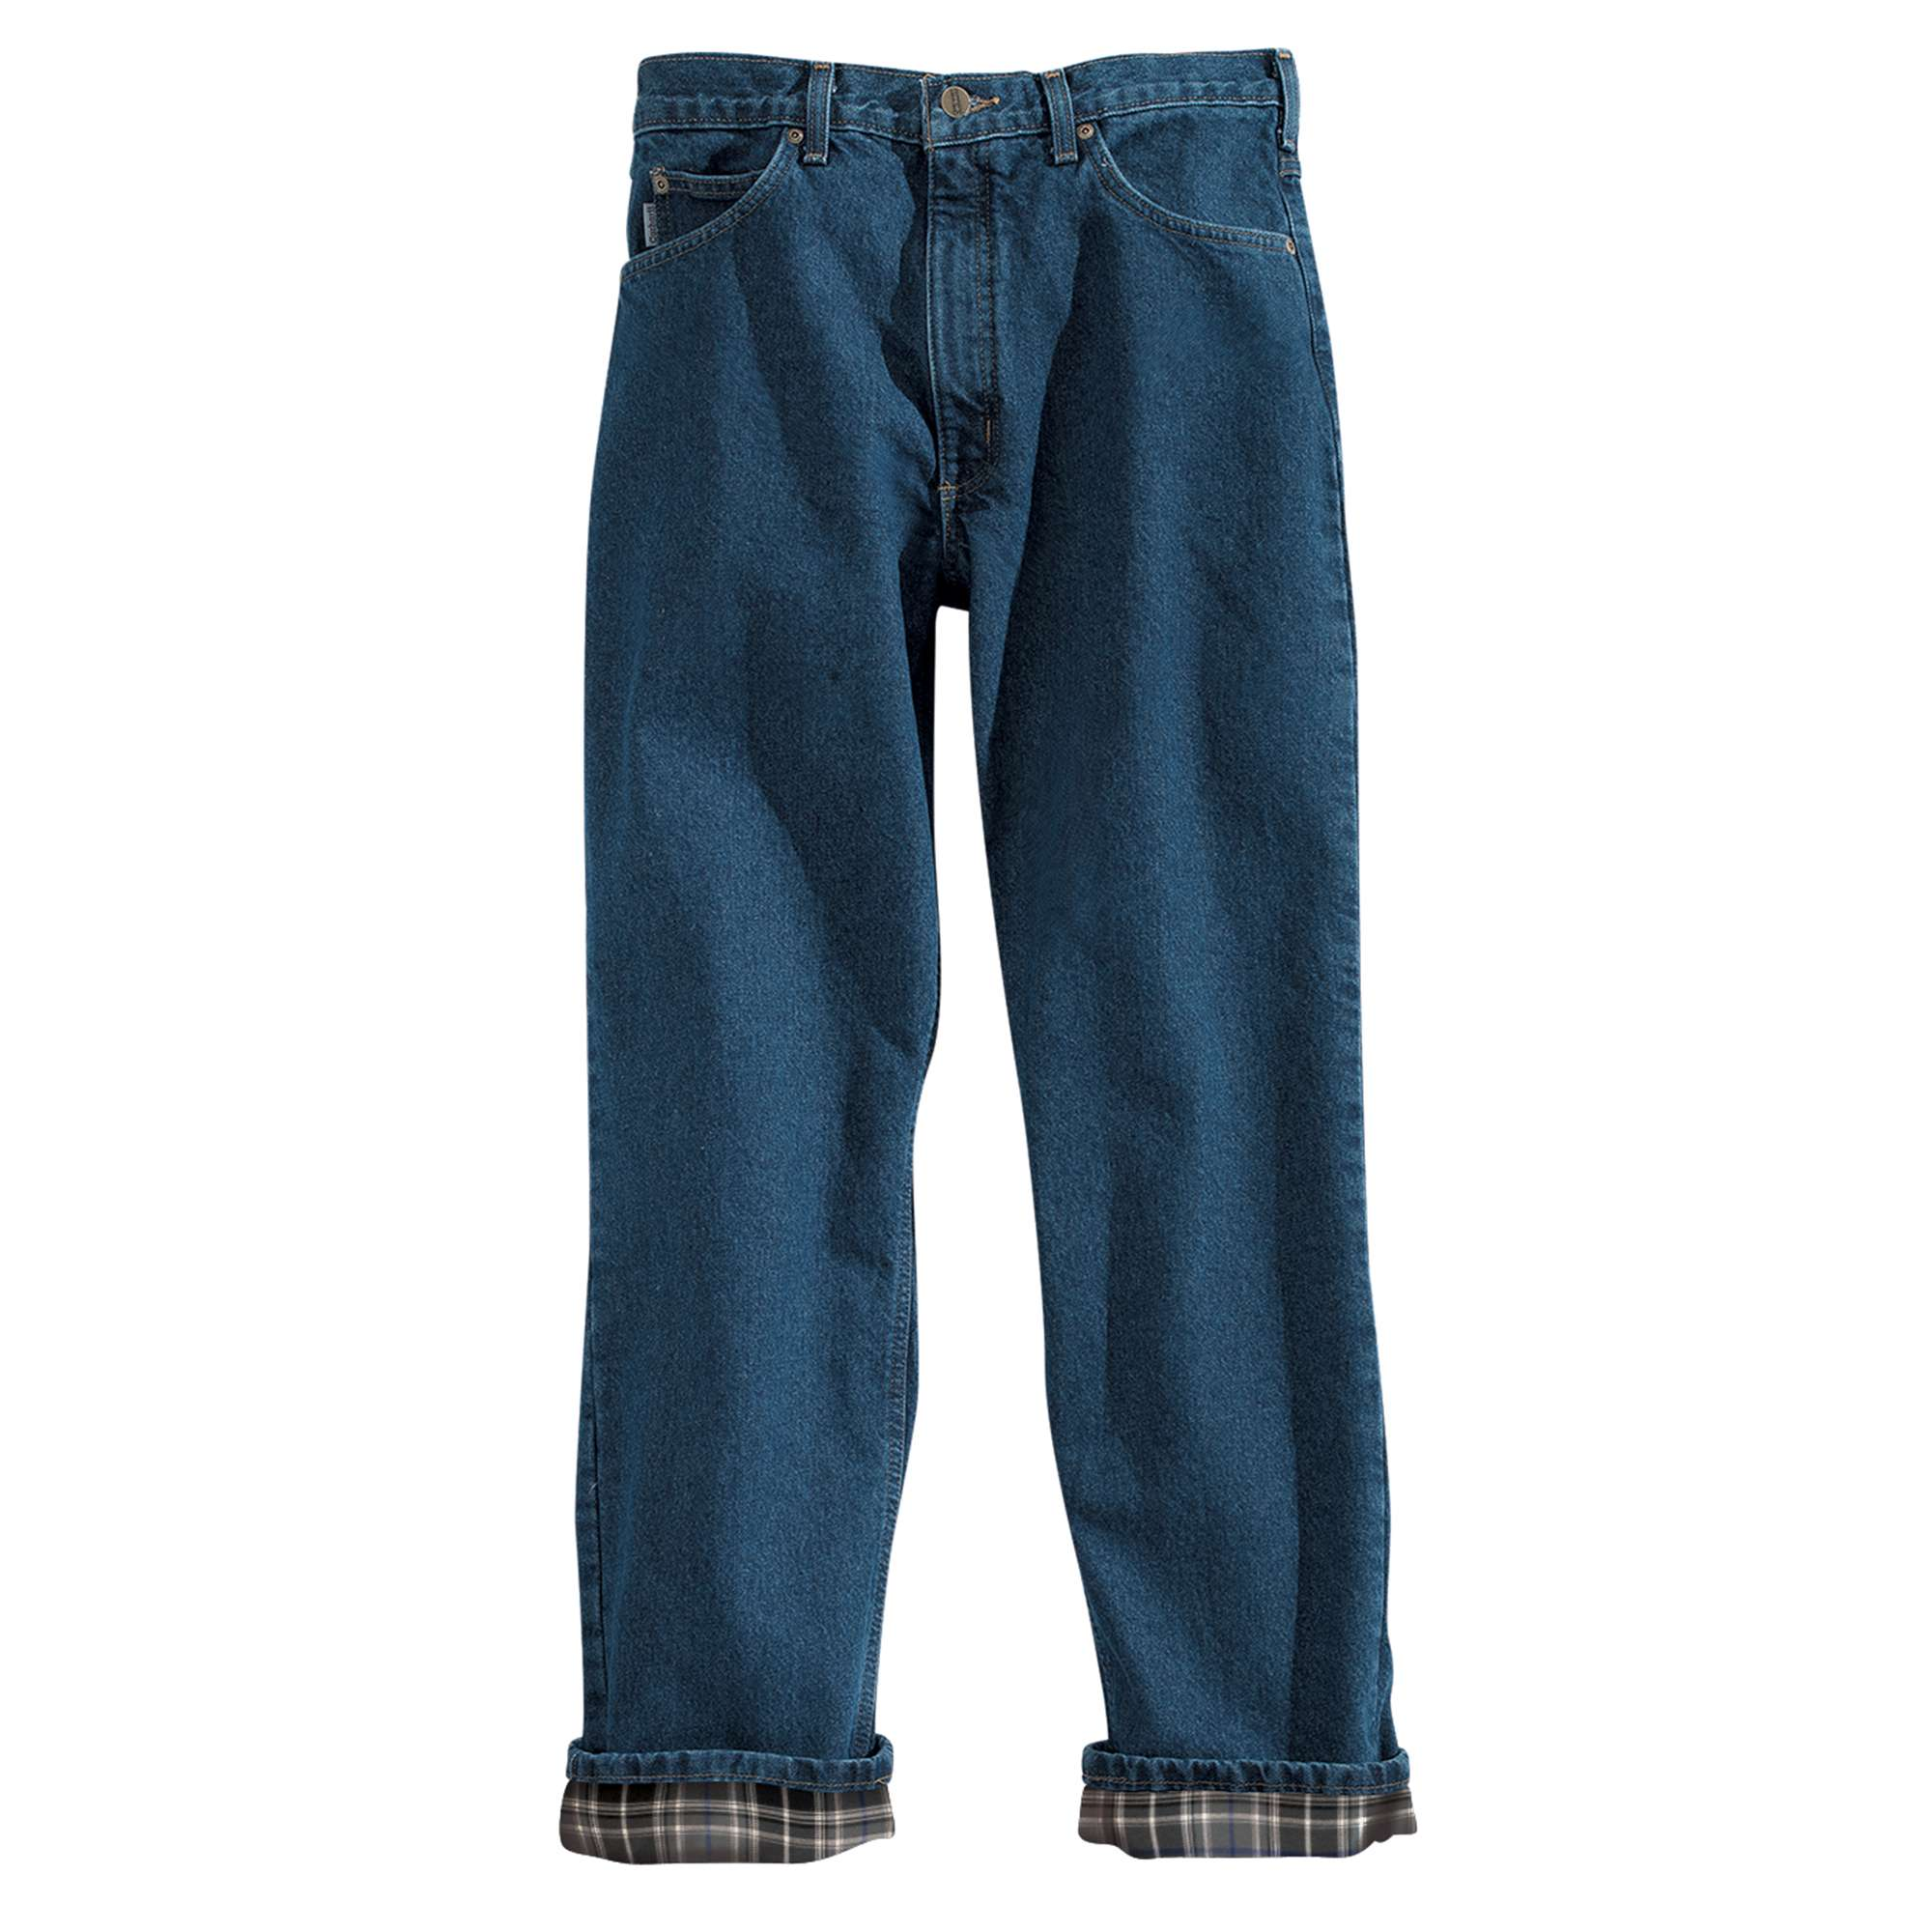 MEN'S RELAXED-FIT FLANNEL LINED JEAN